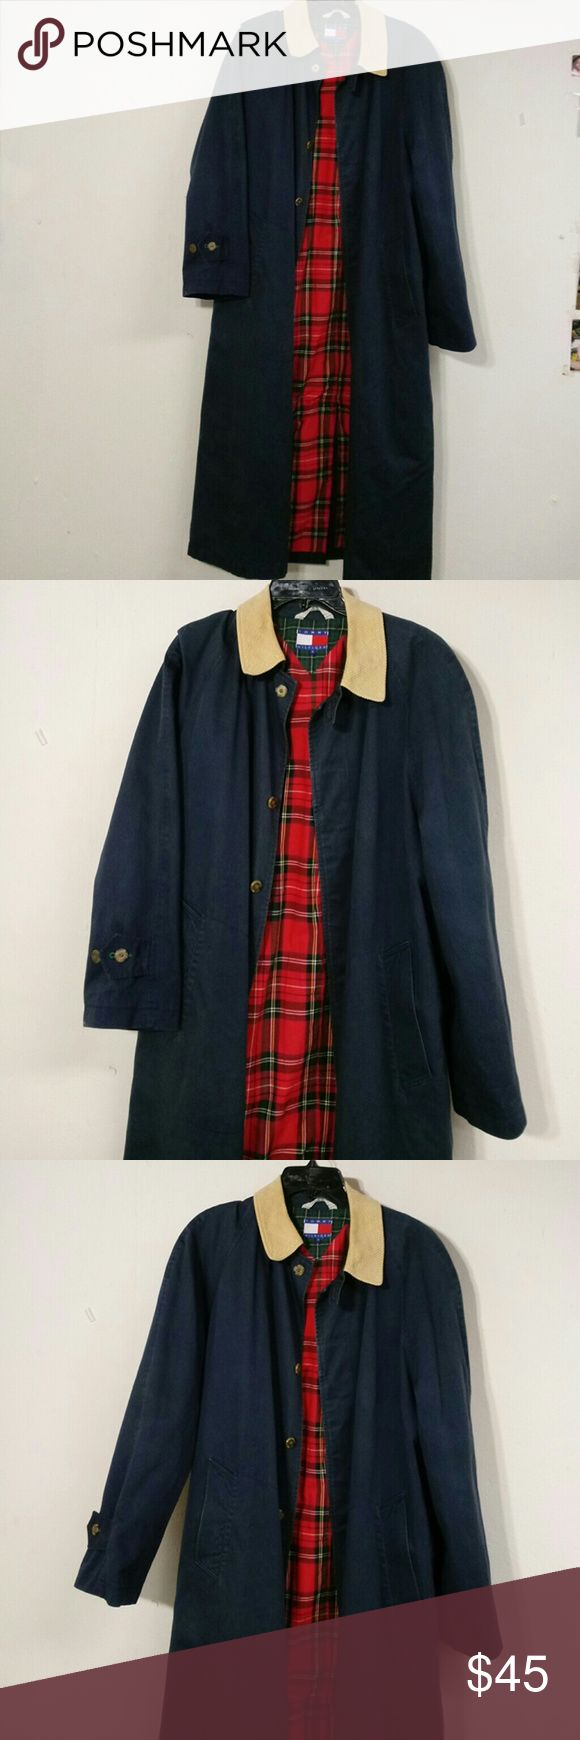 Men's Tommy Hilfiger Old School Rain☔Jacket Men's Tommy Hilfiger Old School Rain☔Jacket Small Size / Blue Classic Long Rain Coat In excellent condition & ready to protect you from the elements. Tommy Hilfiger Jackets & Coats Trench Coats